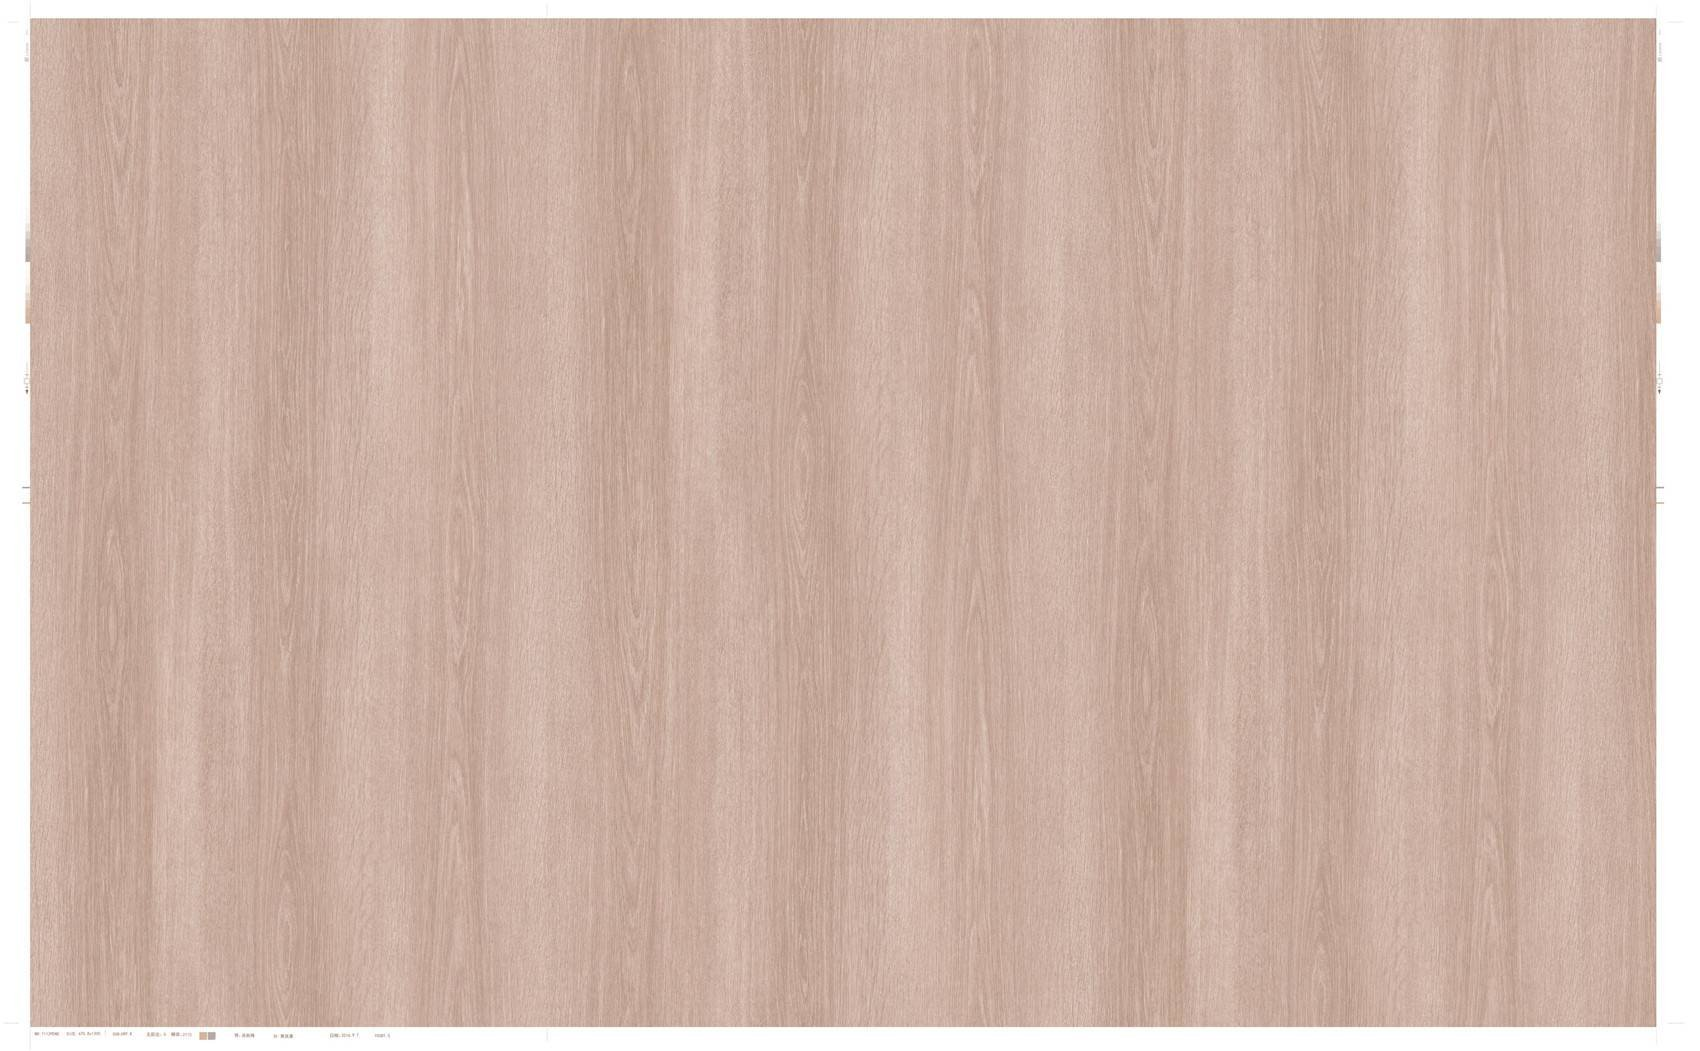 78205  idecor decor paper oak 7ft cylinder